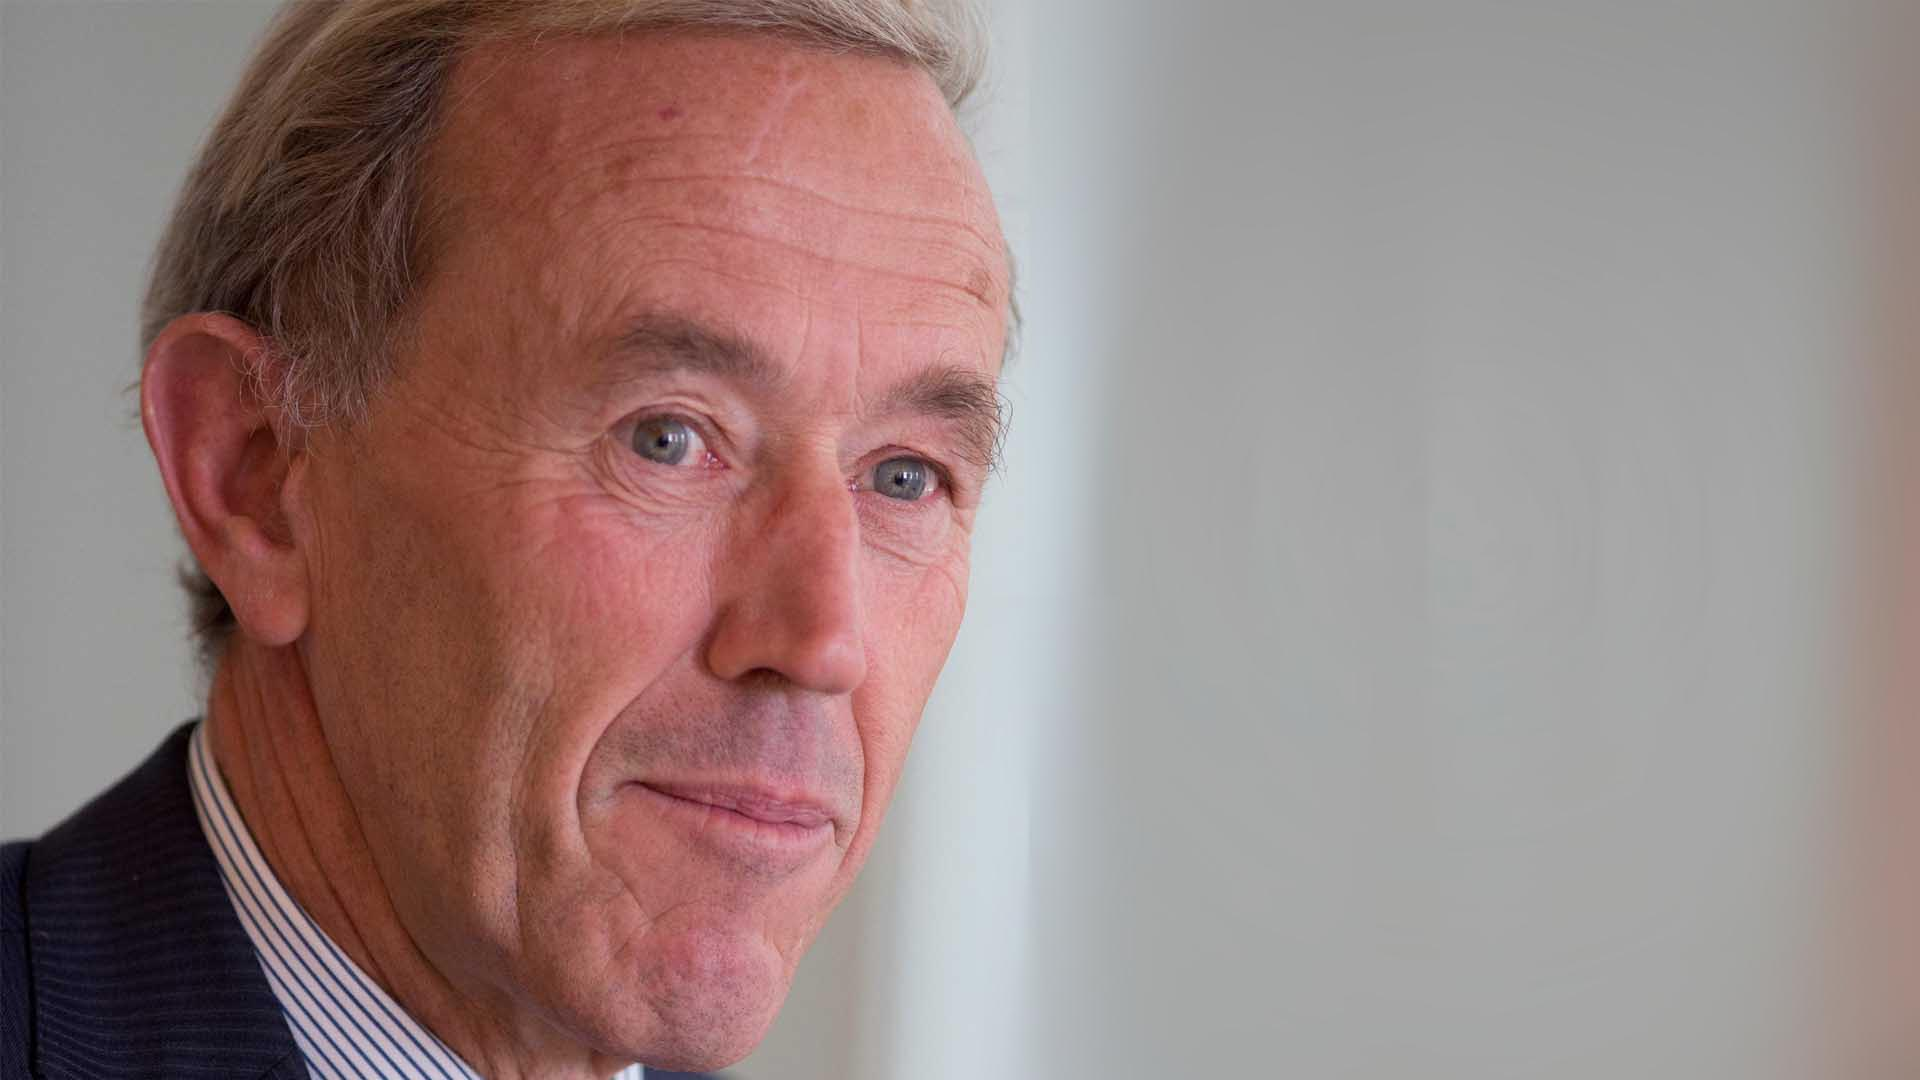 Mel Kroon to resign as CEO of TenneT